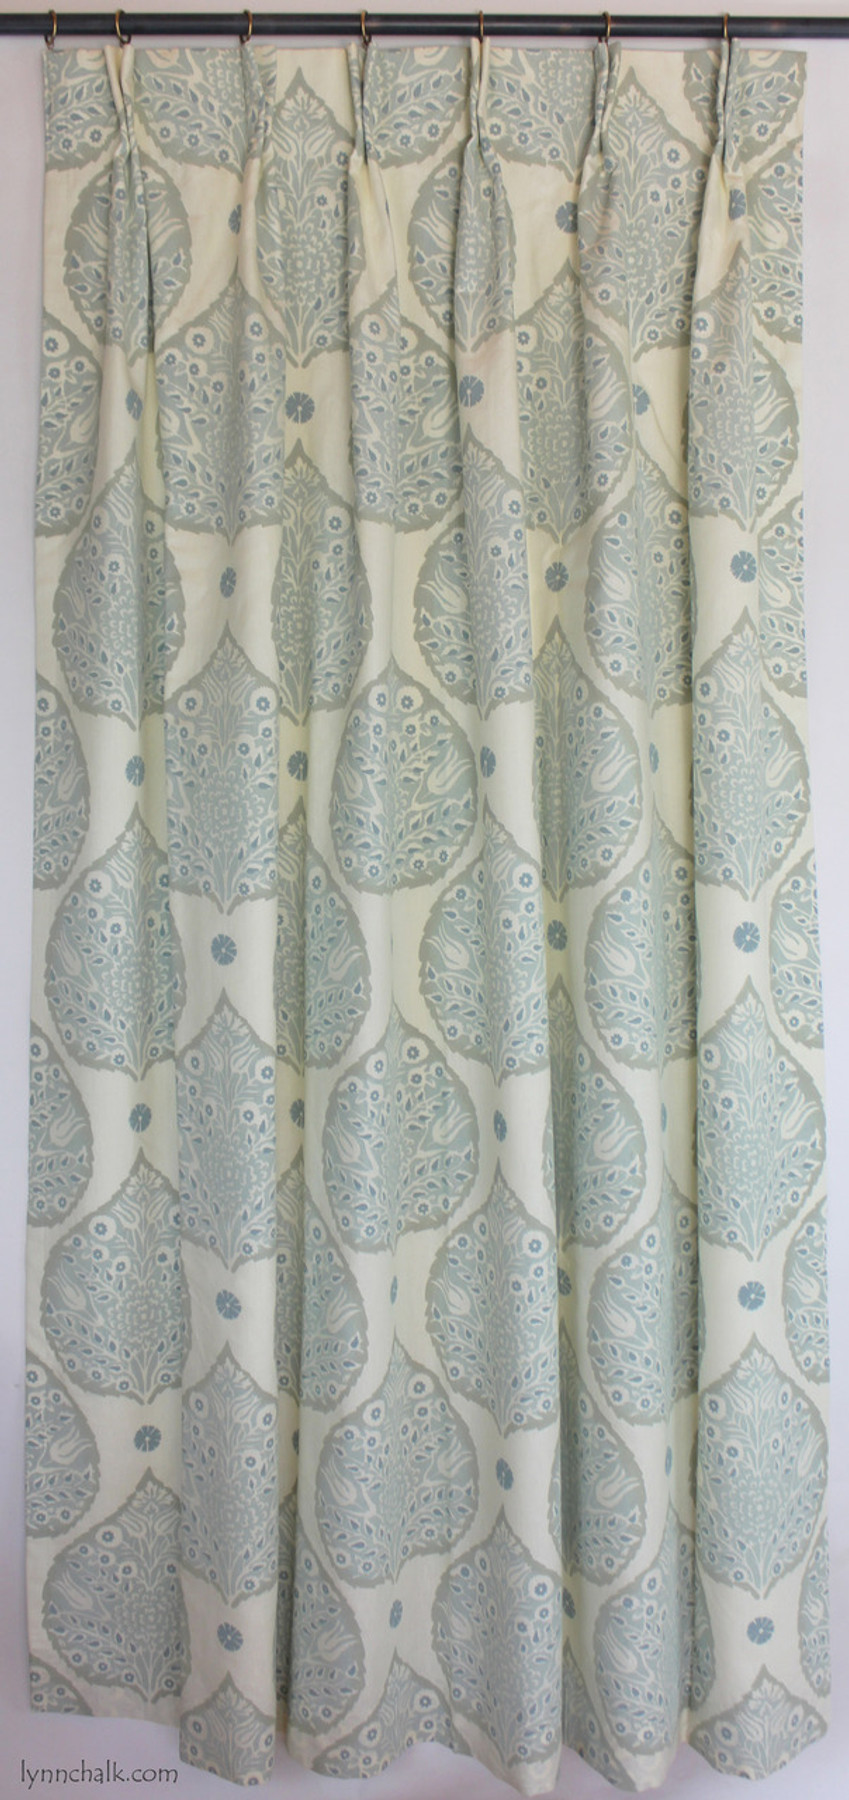 Galbraith & Paul Roman Shades in Lotus in Cadet (Dana Wolter Interiors-Traditional Home)